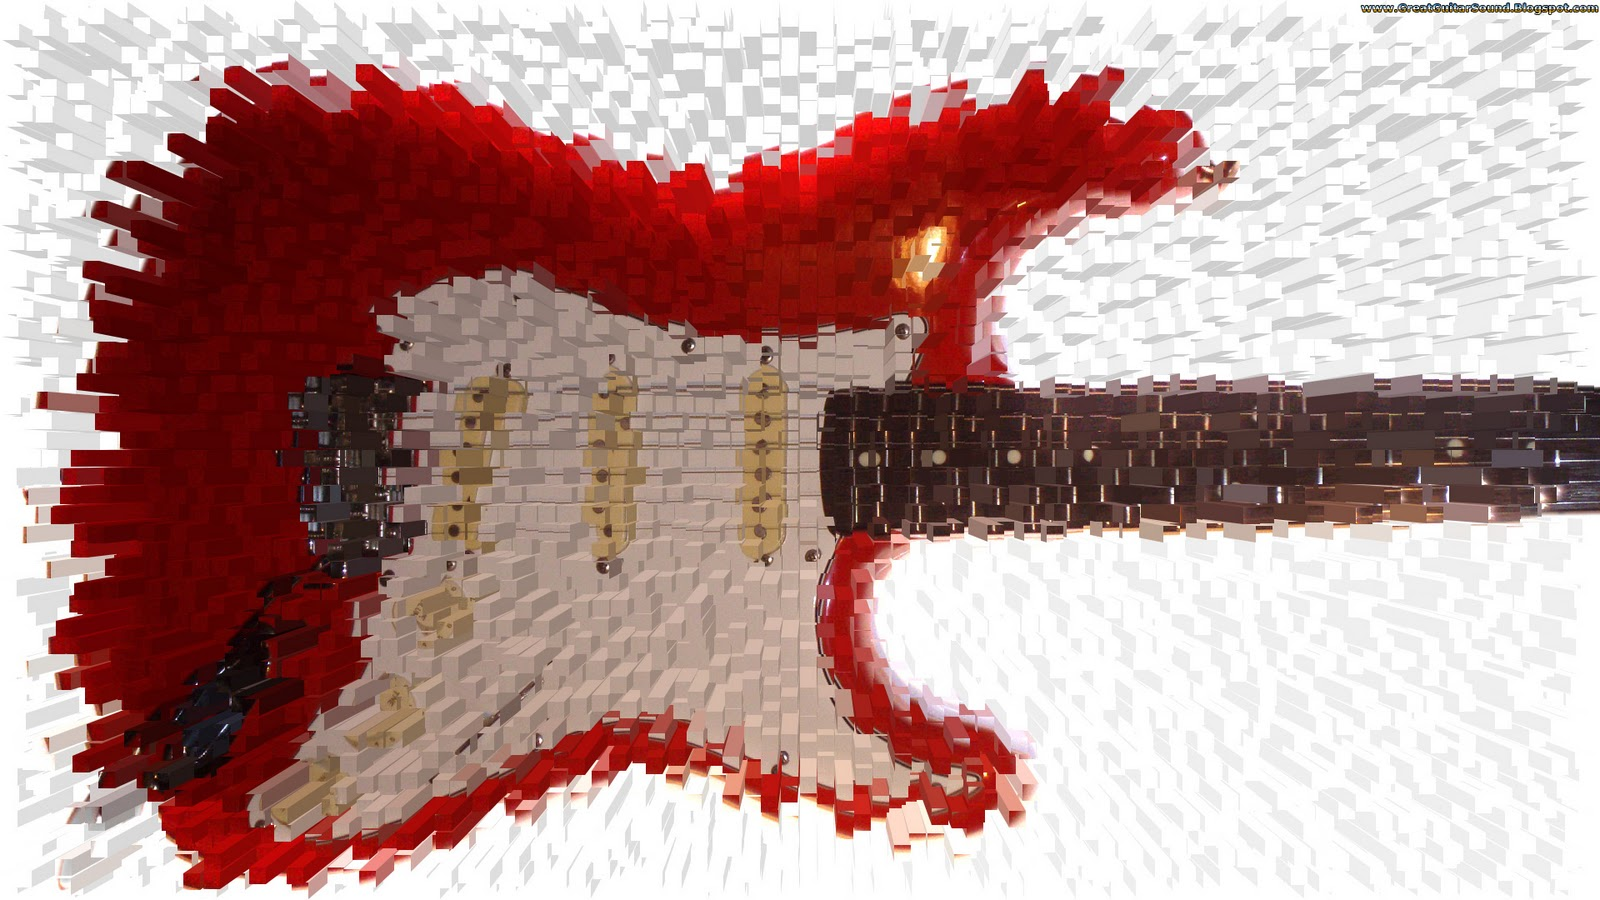 http://1.bp.blogspot.com/-FP3sSgucNps/TqcT6tANcfI/AAAAAAAAA-k/VD3qjhBwDFg/s1600/Red+Fender+Stratocaster+Electric+Guitar+Lego+Blocks+Extrude+Background+HD+Guitar+Music+Desktop+Wallpaper+1920x1080+Great+Guitar+Sound+www.GreatGuitarSound.Blogspot.com.jpg